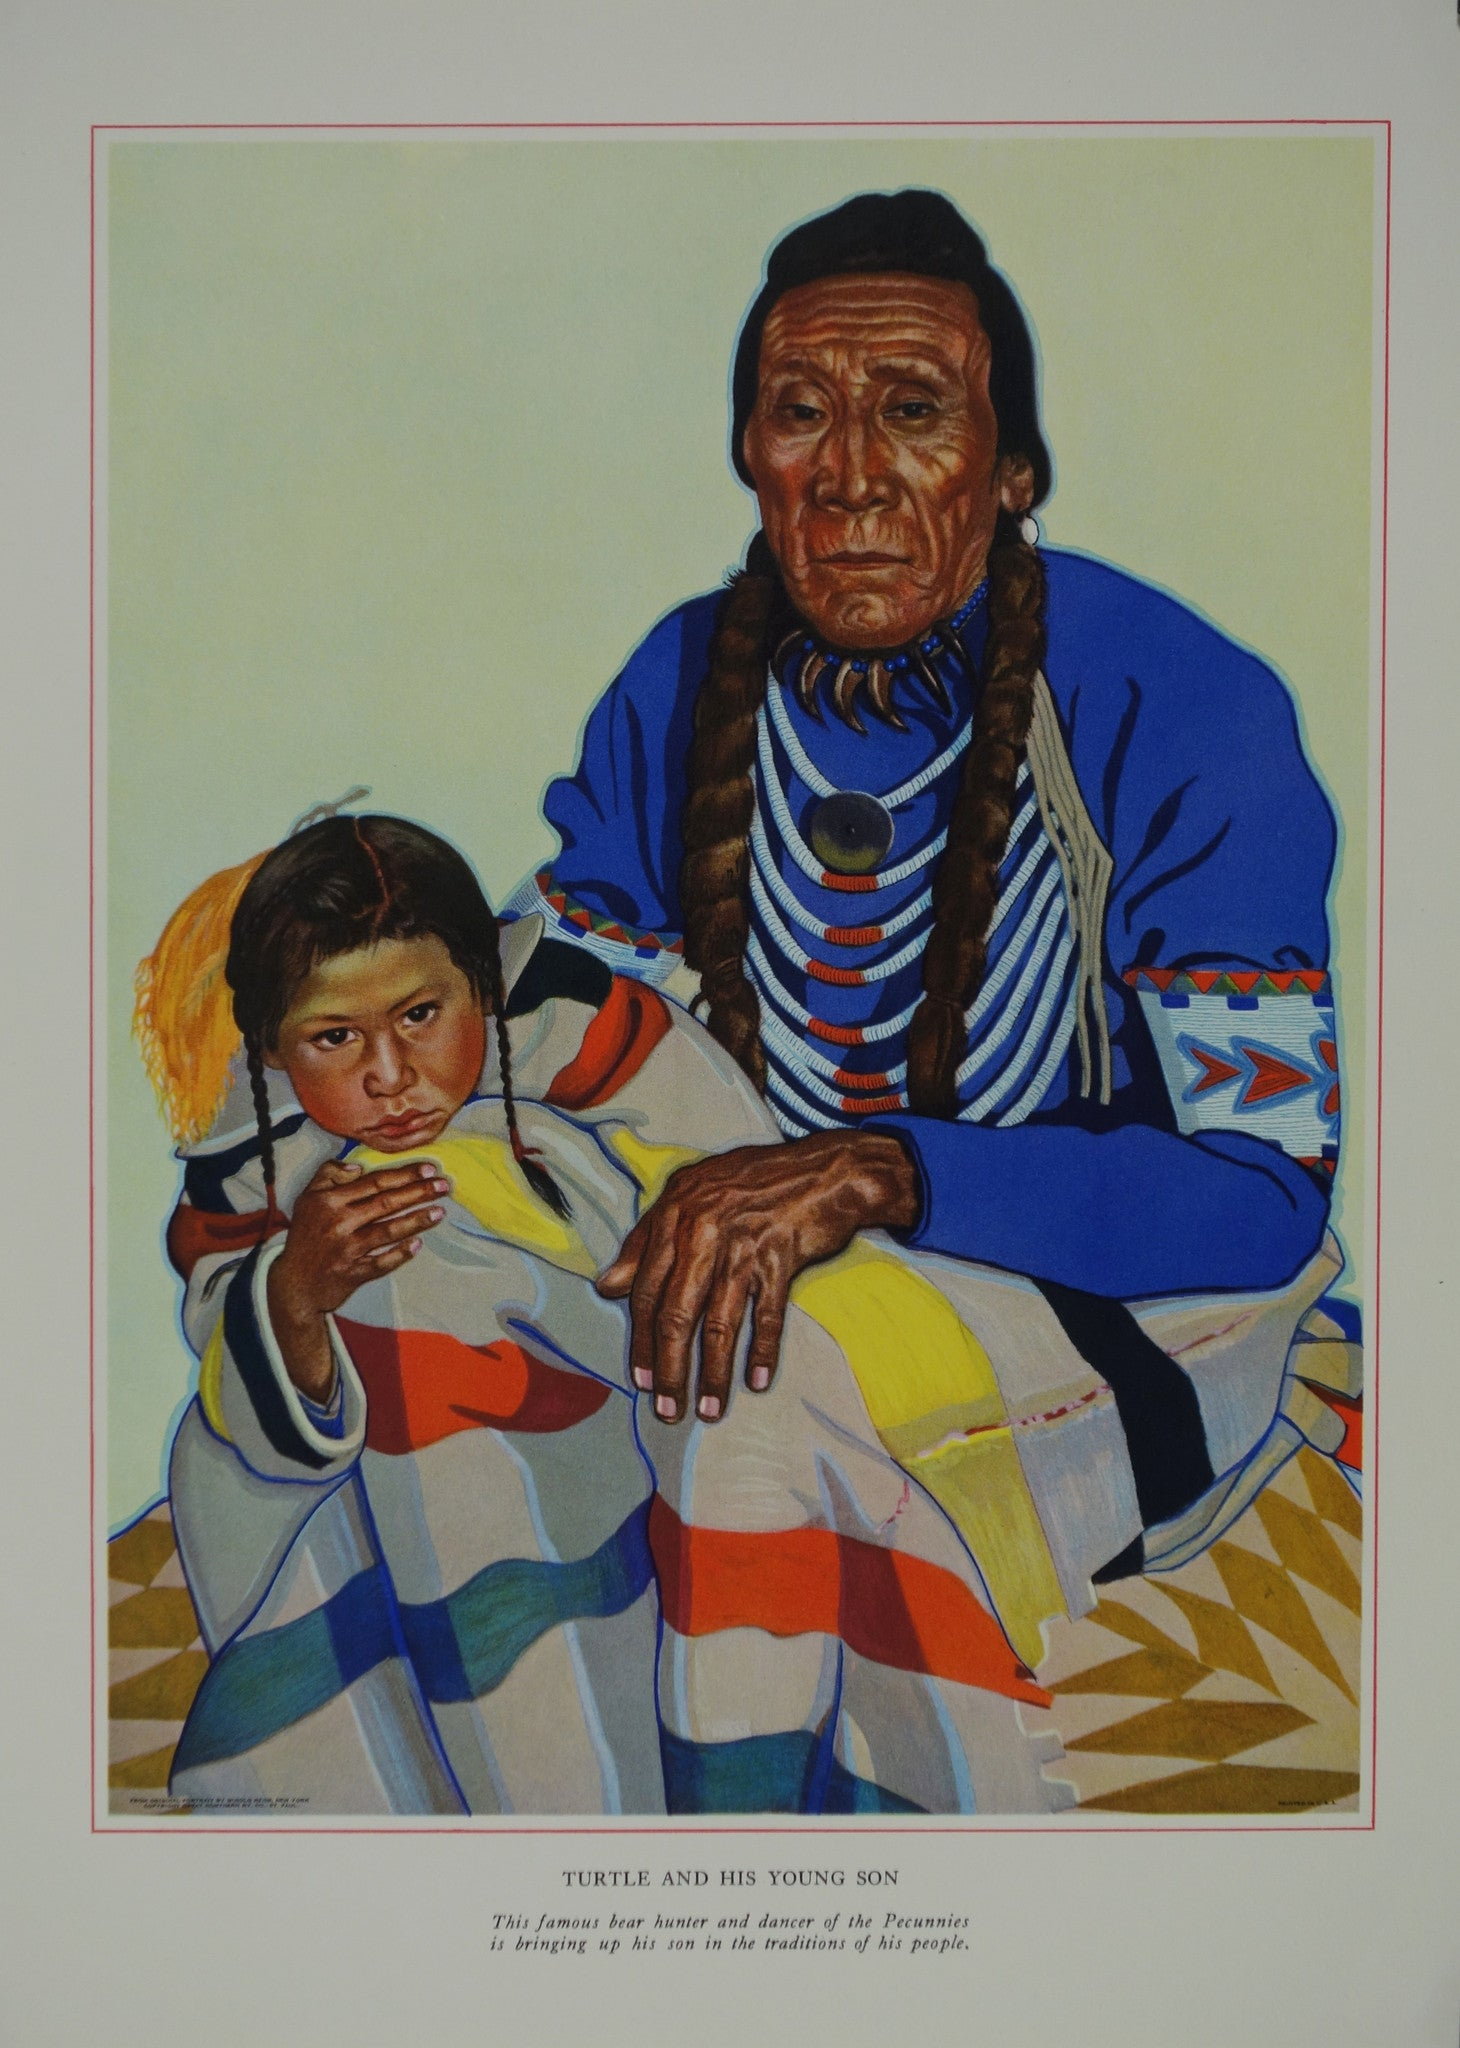 Portrait of Blackfeet Indian - Turtle and his Young Son